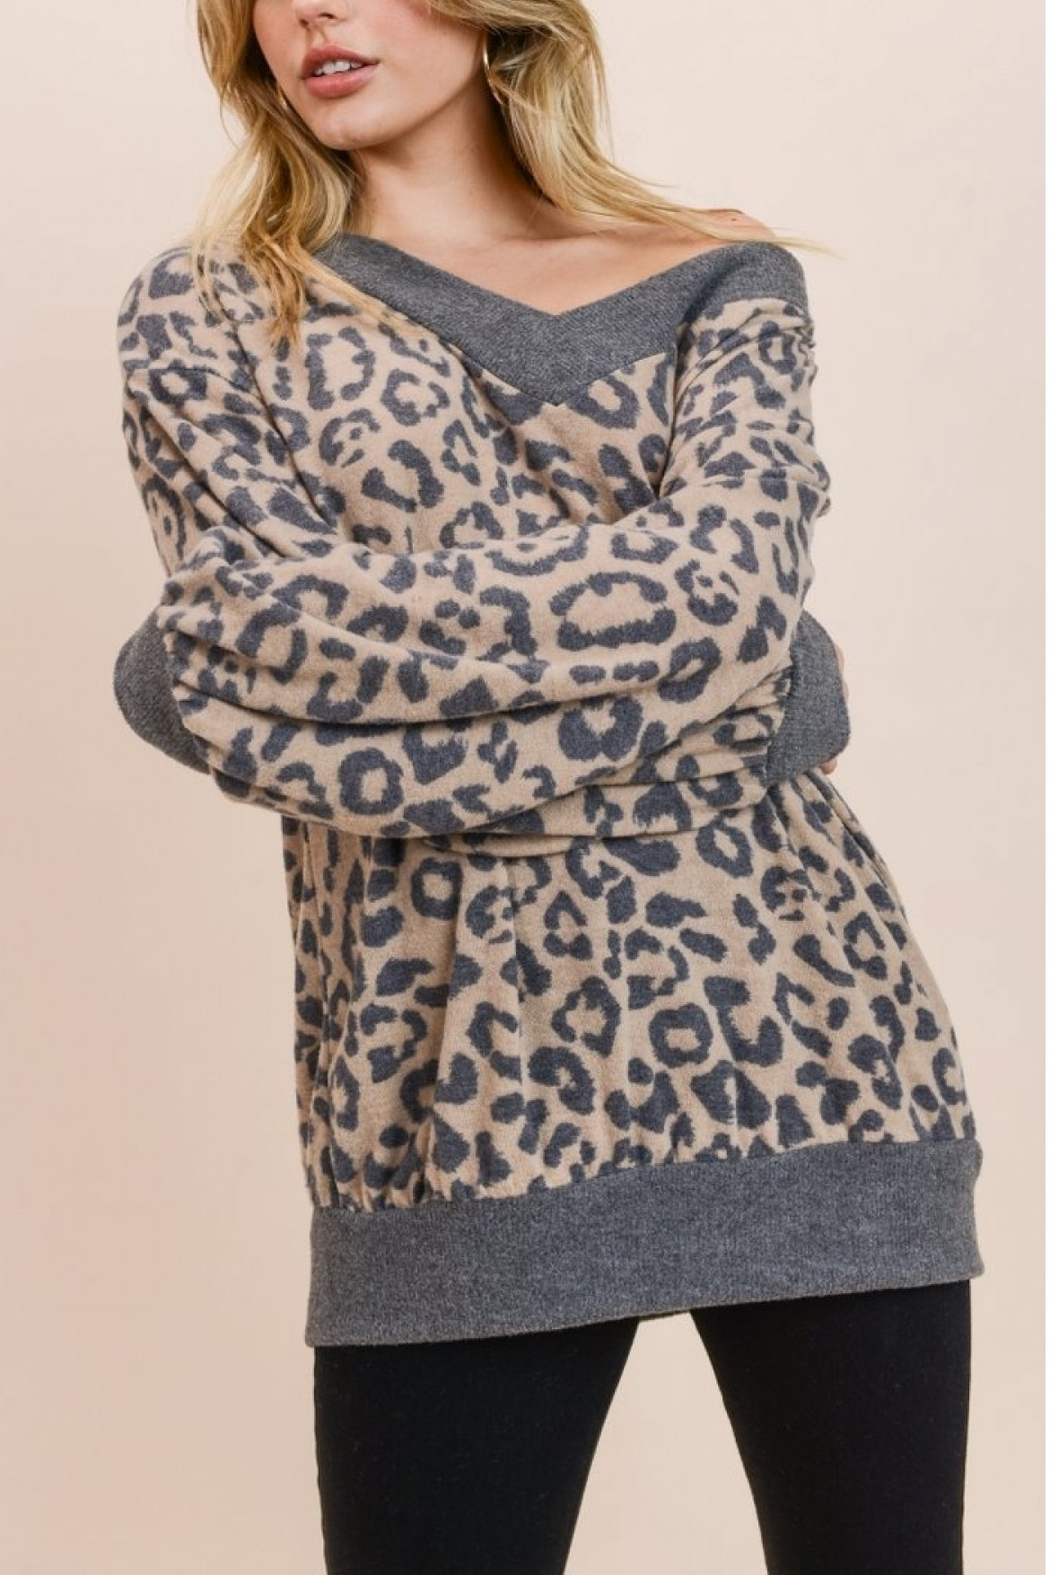 Jodifl LEOPARD PRINT SWEATER - Front Cropped Image